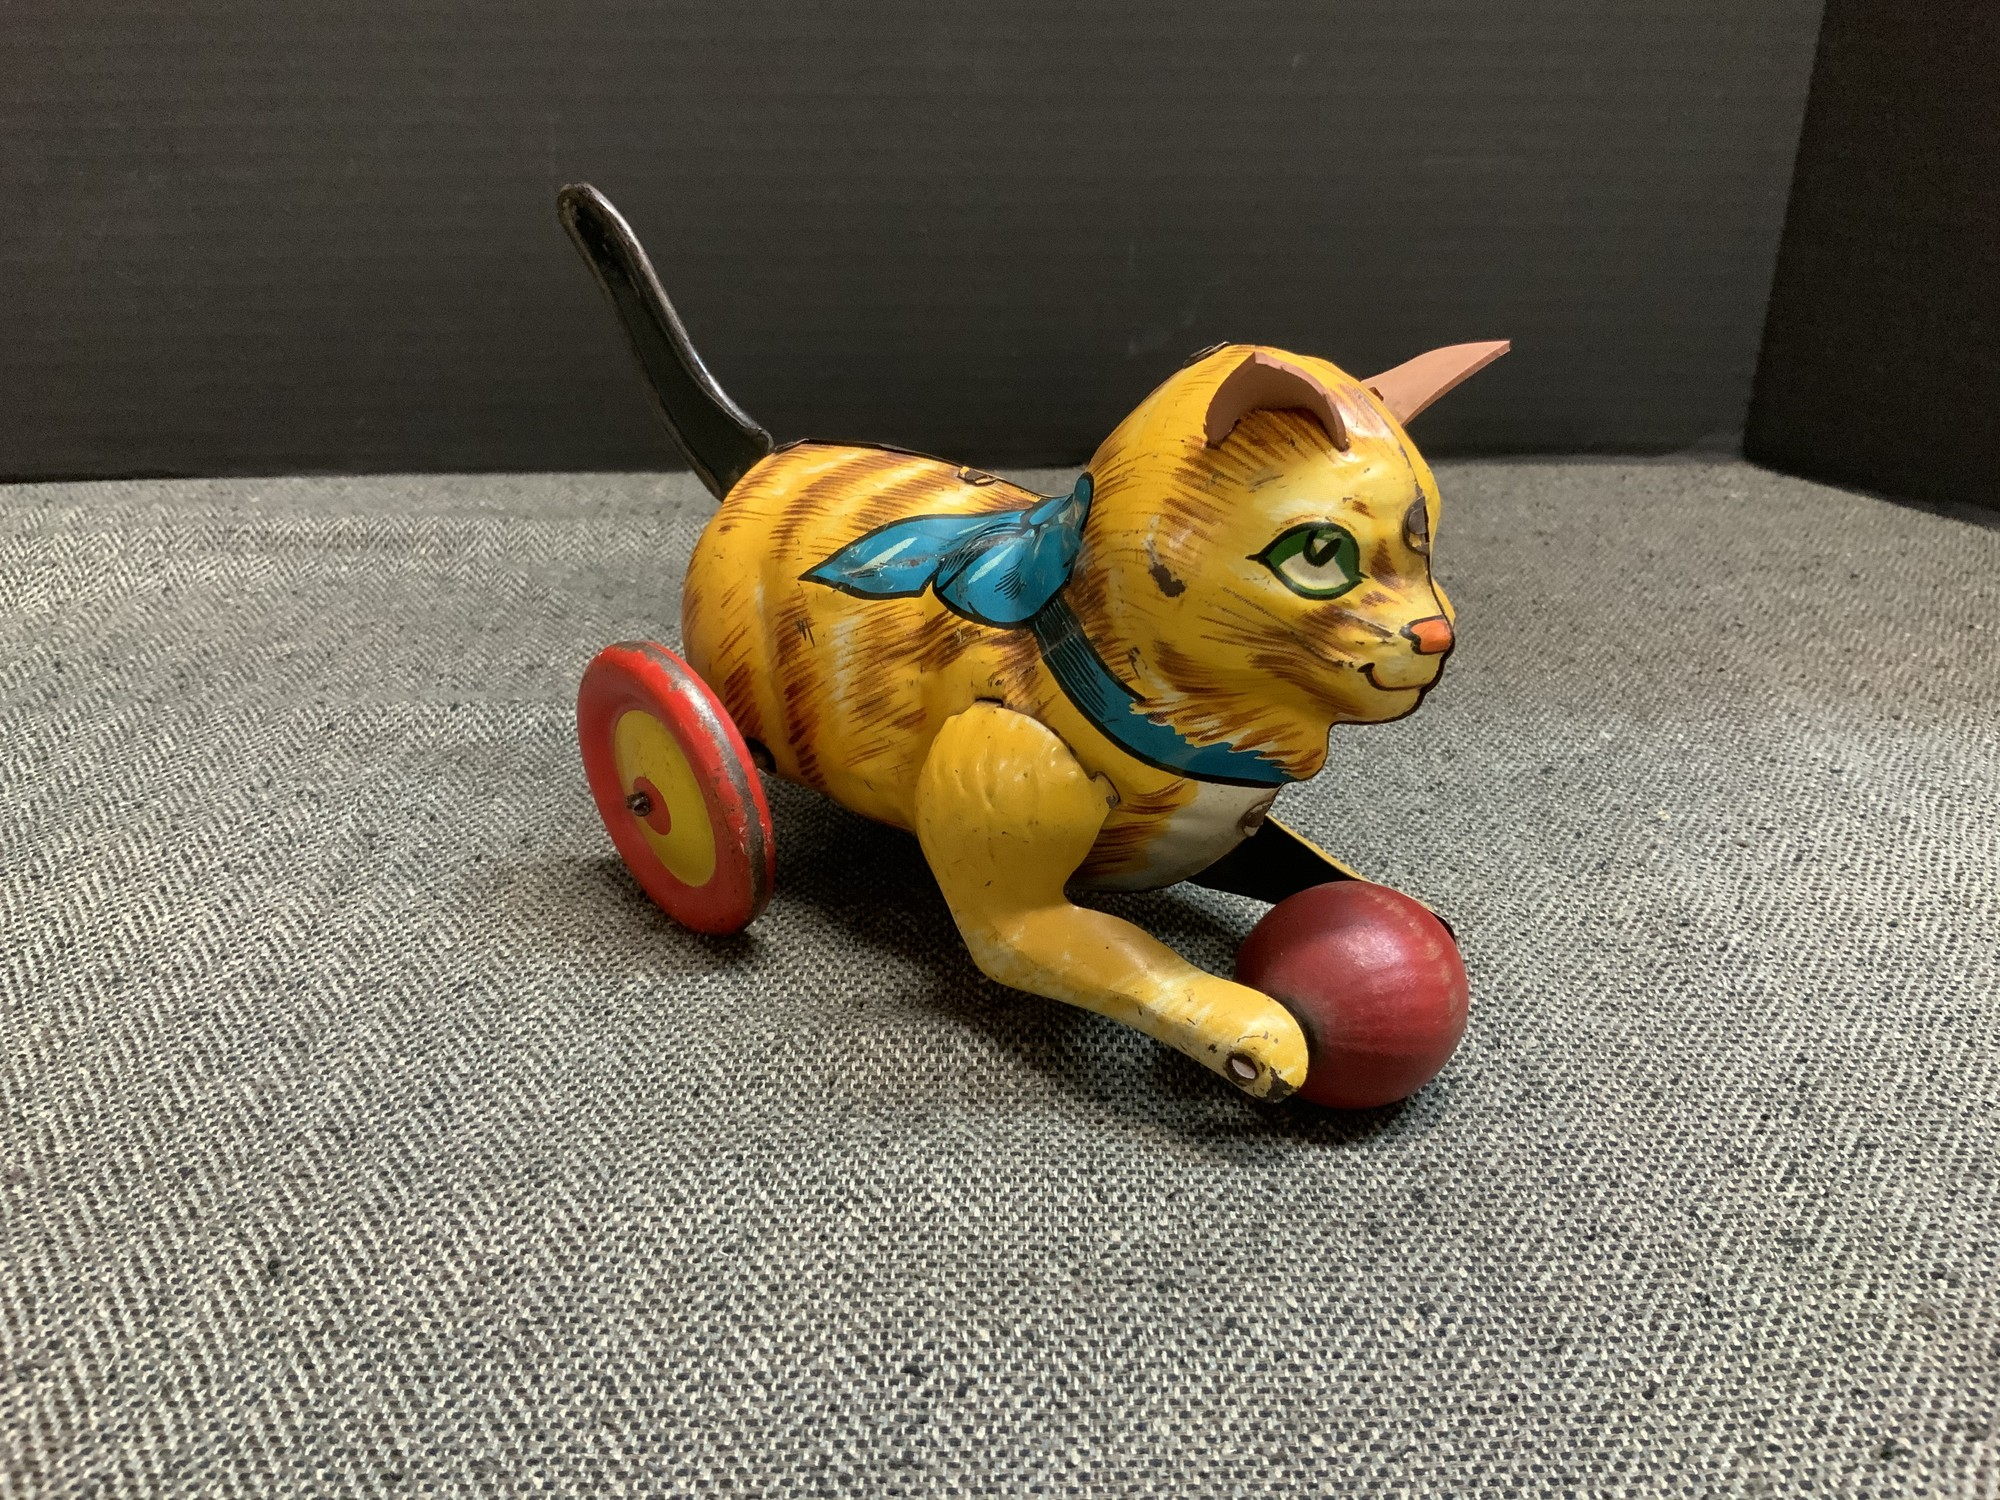 This toy measures 9 inches at its widest and 5 inches at its tallest. It still maintains vibrant colors and is in good condition for its age.